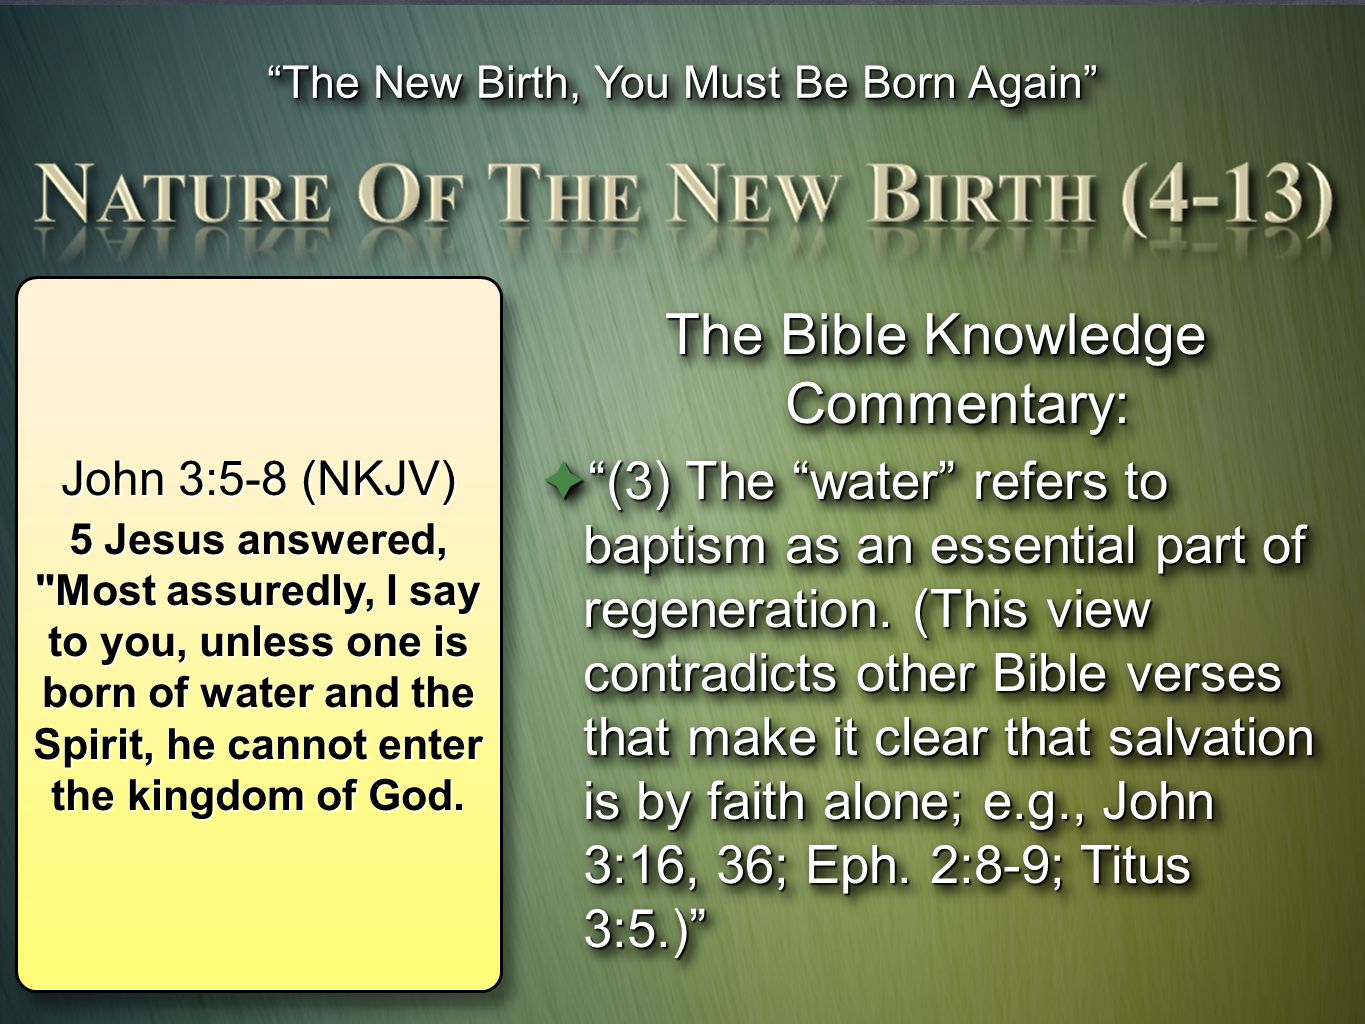 The Bible Knowledge Commentary: